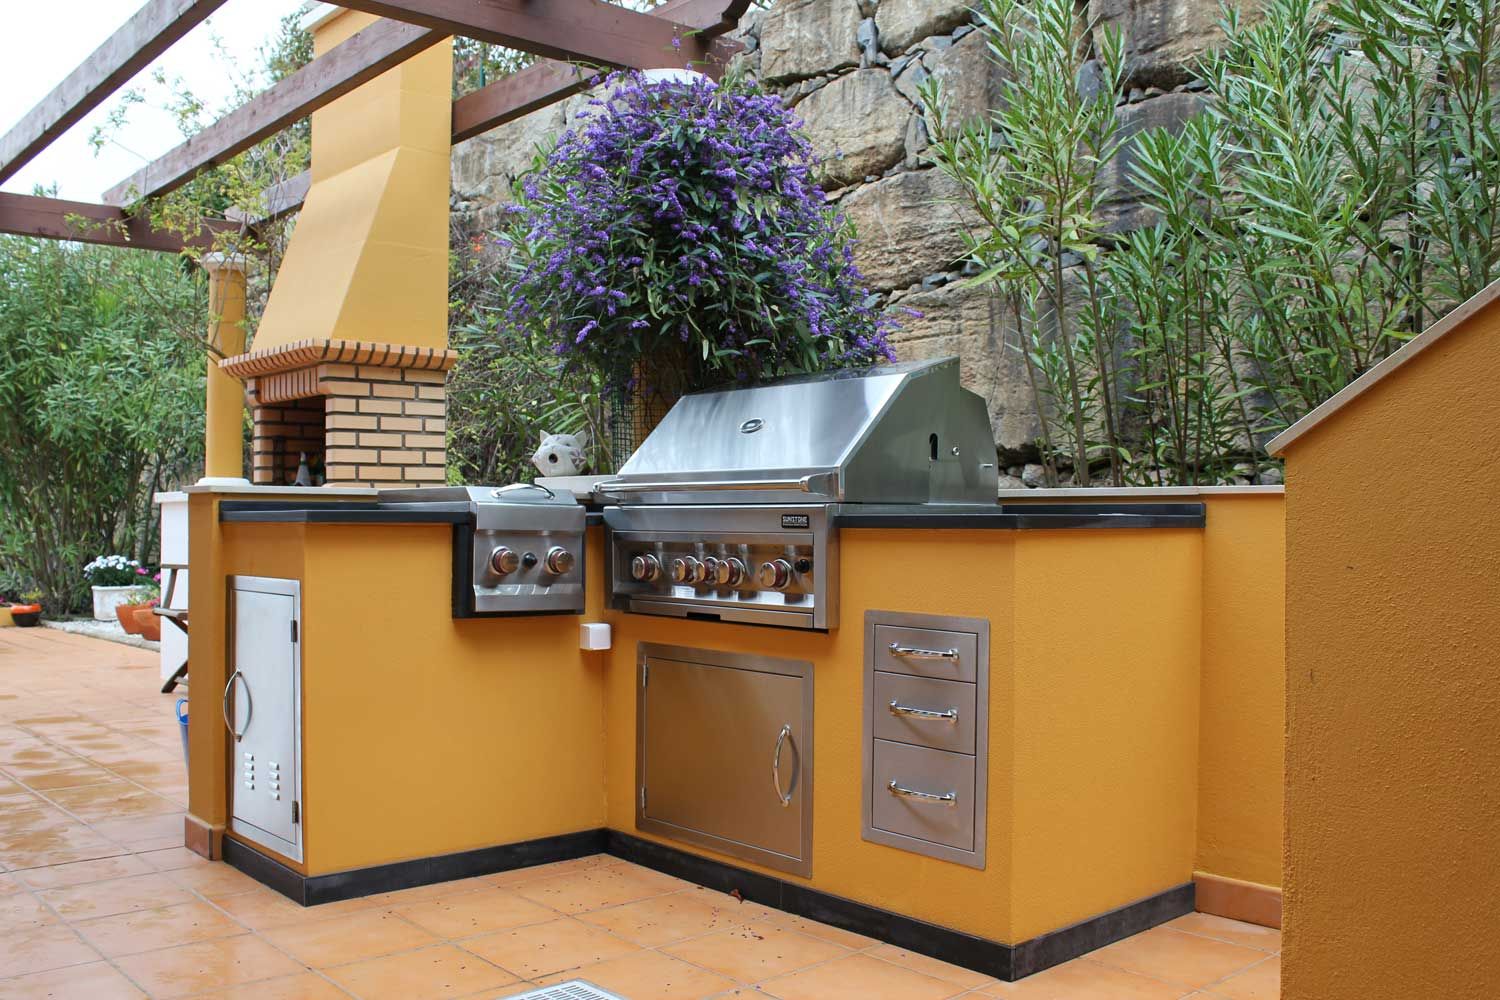 bbq 14 inch drawer systems tx sunstonemetalproducts com